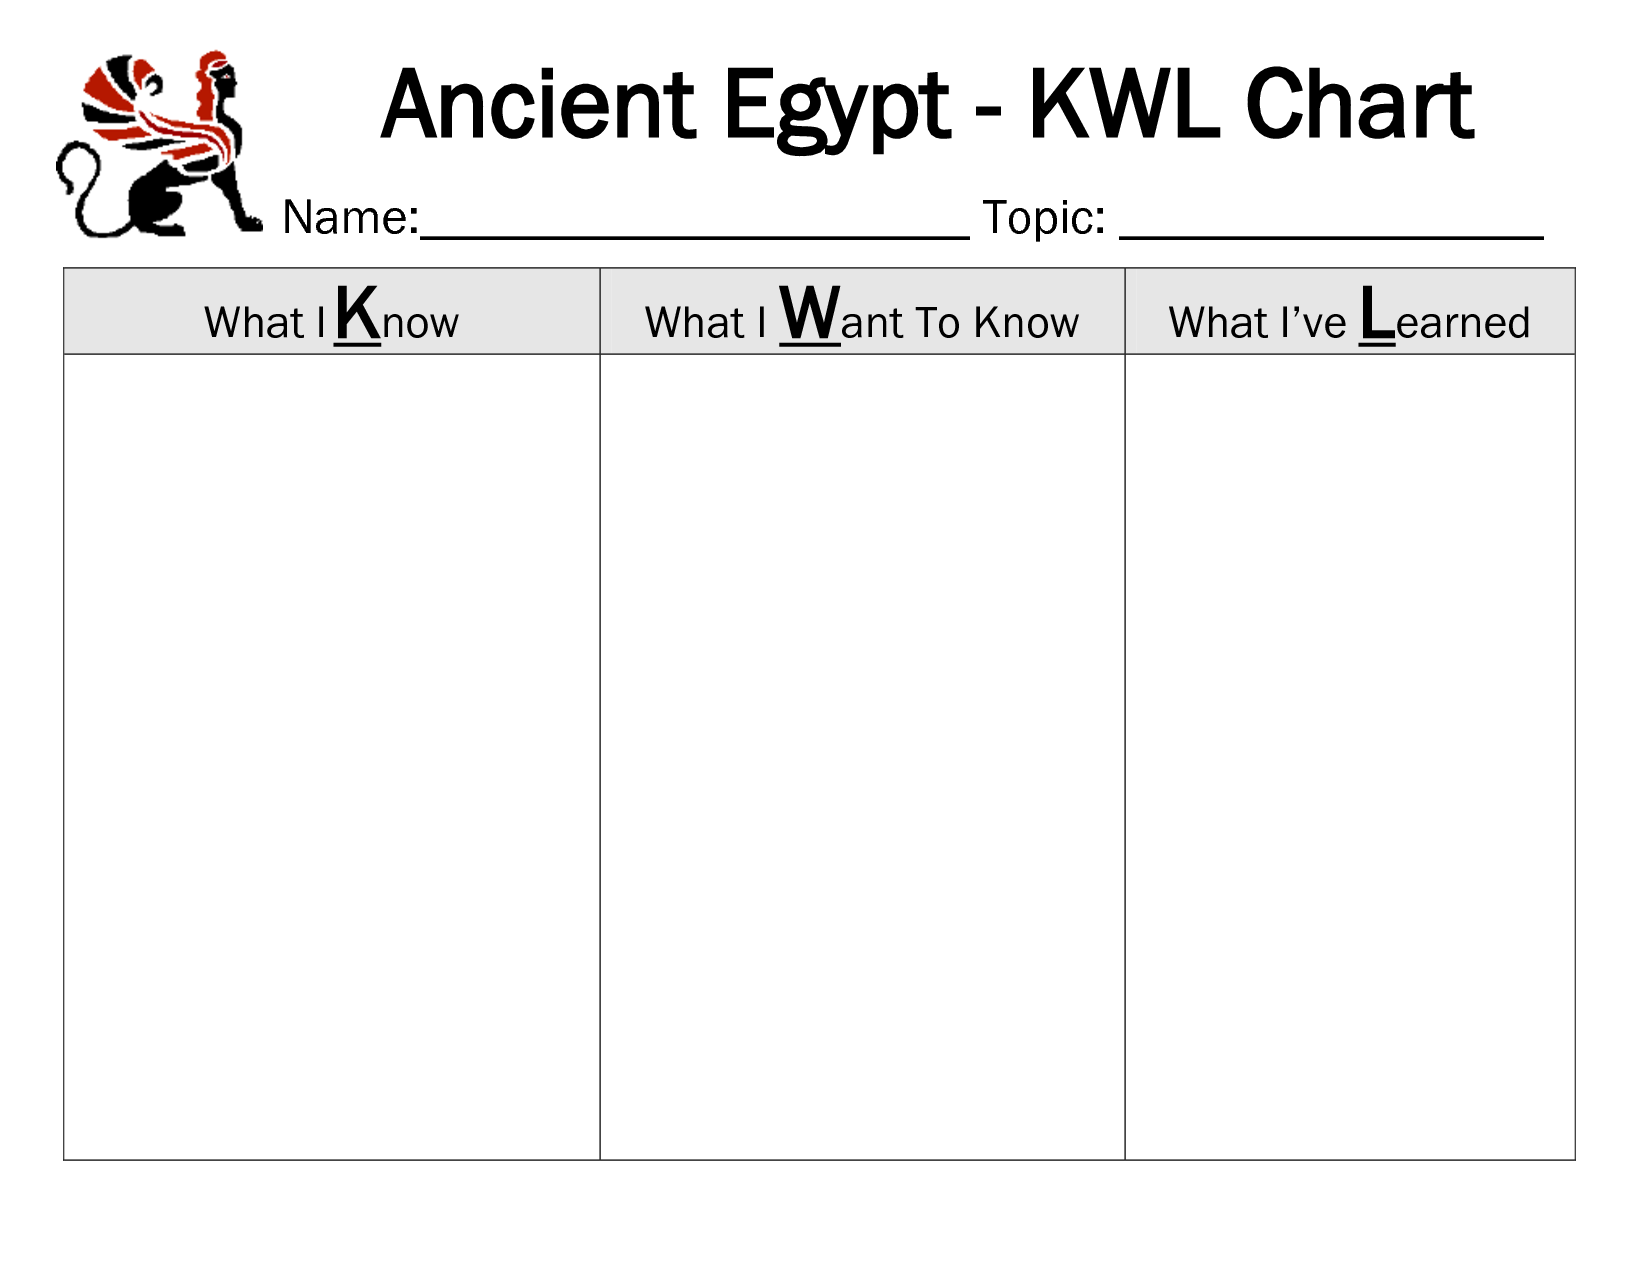 worksheet Ancient Egypt Map Worksheet ancient egypt k w l chart world history kwl1